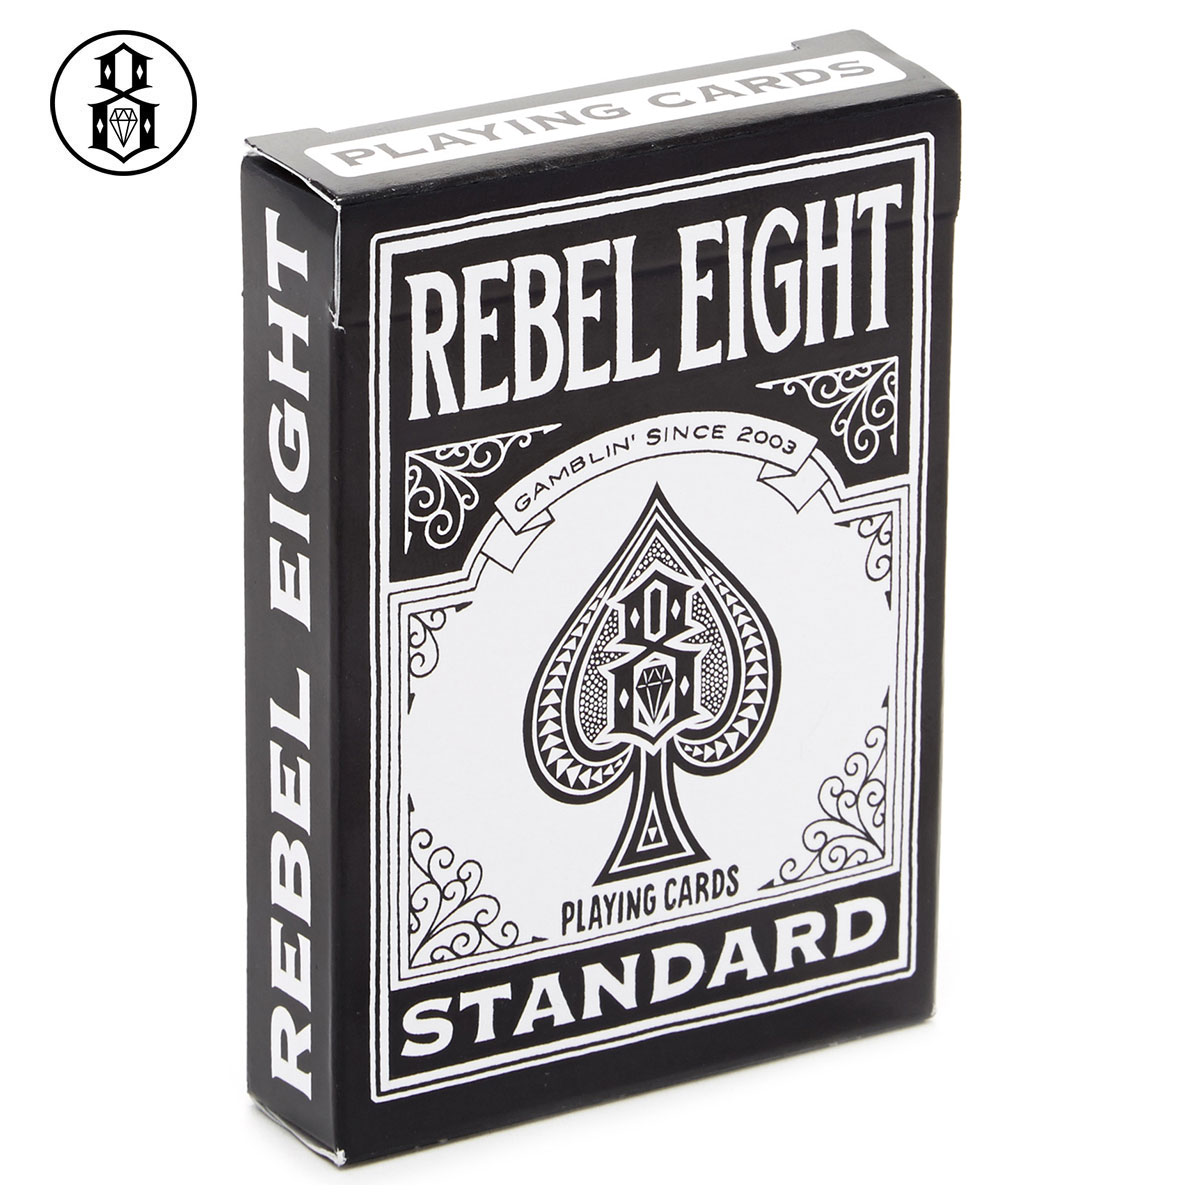 剩下衹有! REBEL8(八水準)PLAYING CARDS[rebel 8水準8撲克牌打扮baisukuru Bicycle burandomajishansutoritoburandosuketobodogurafititatu Mike Giant藝術]